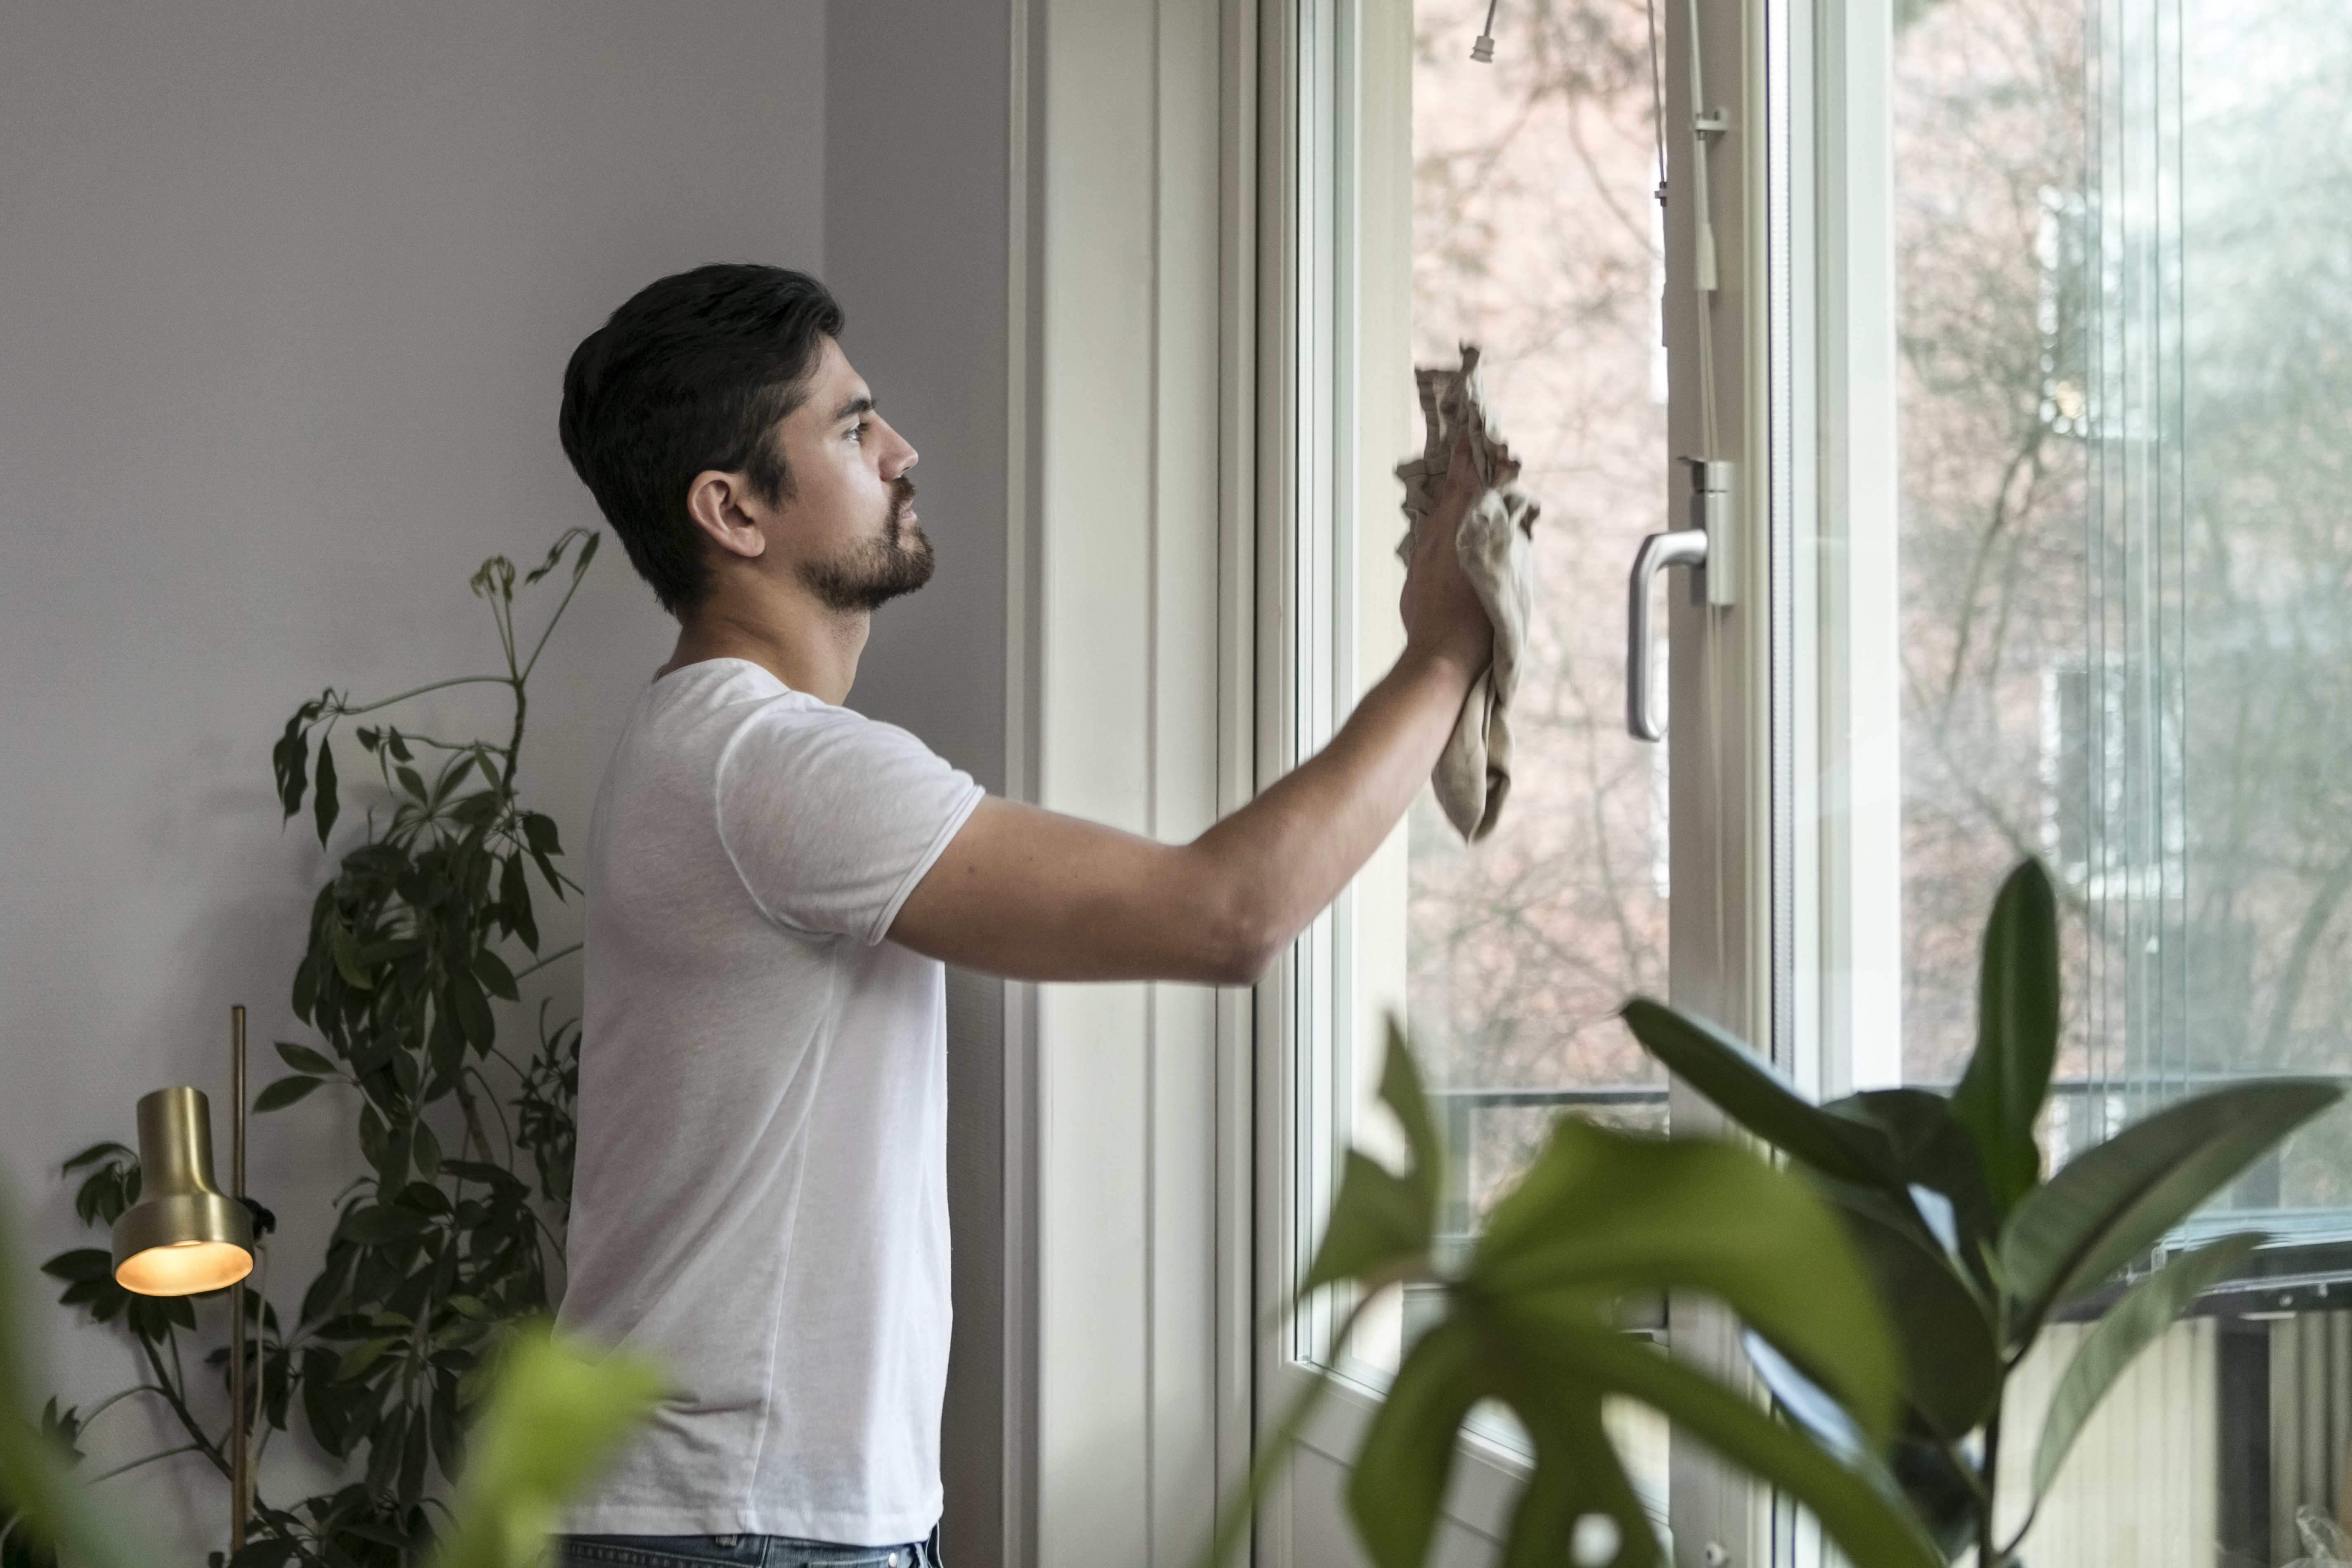 How to Remove Concrete Splatter From Windows | Home Guides